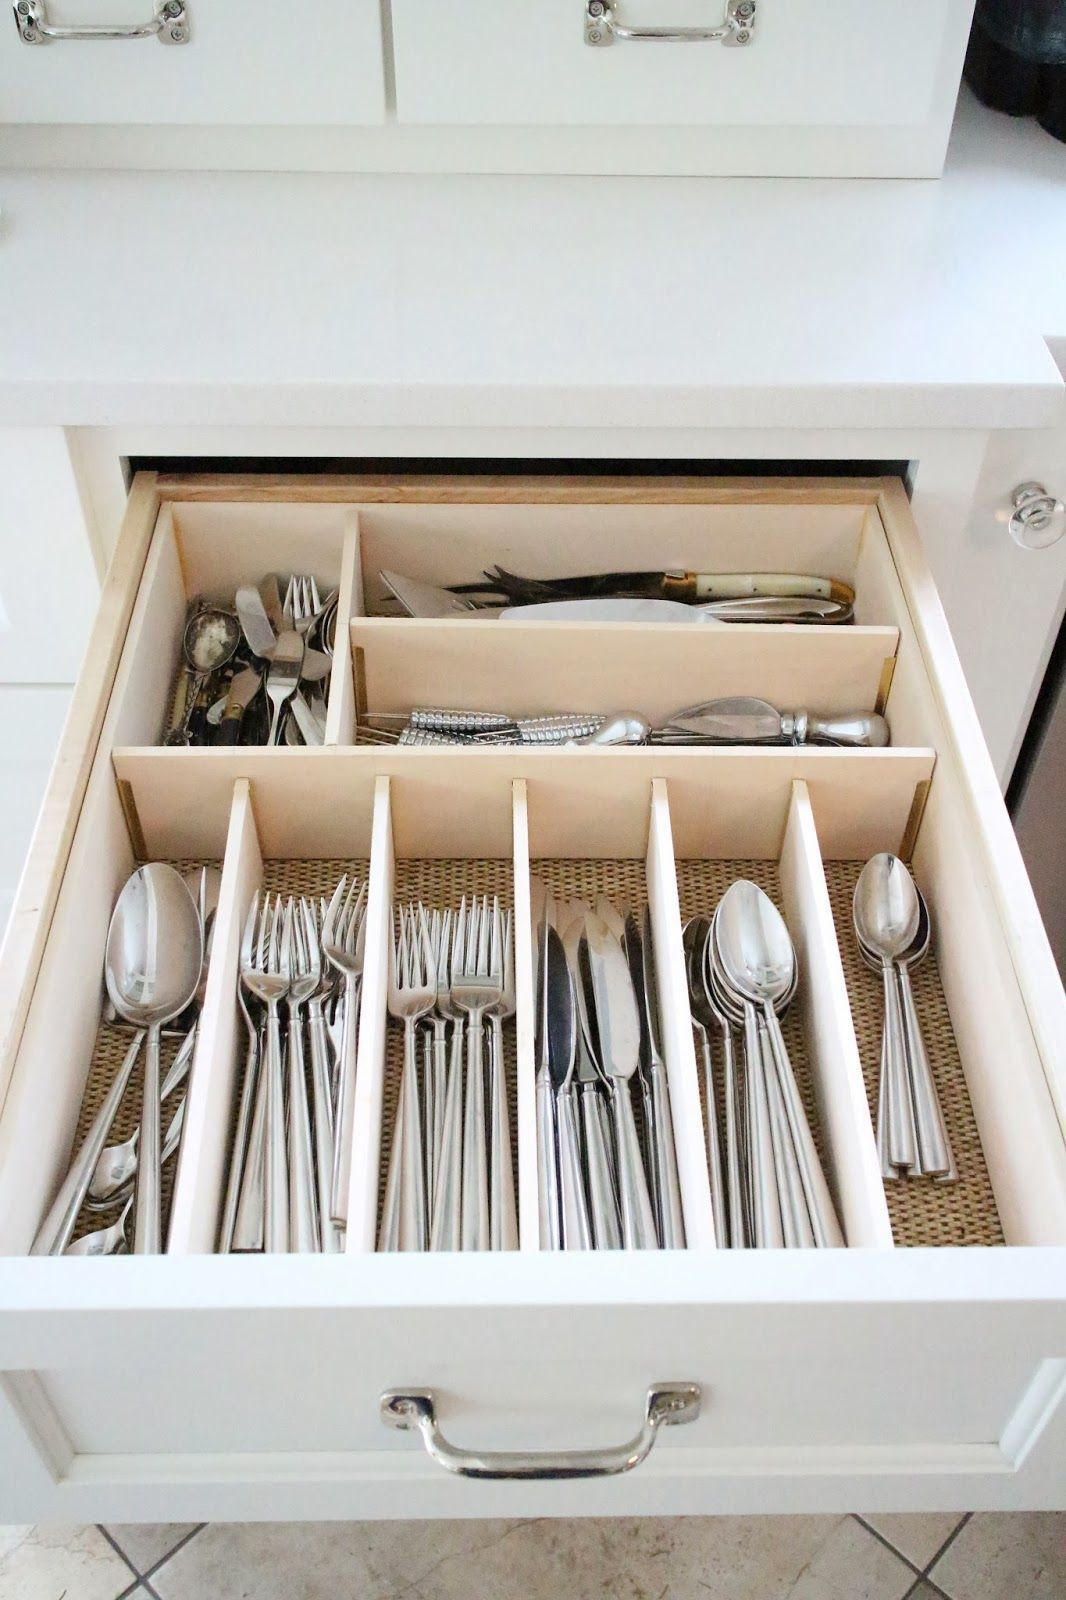 Best ideas about DIY Silverware Drawer Organizer . Save or Pin Drawer Organizing Tips That Keep The Mess At Bay Now.